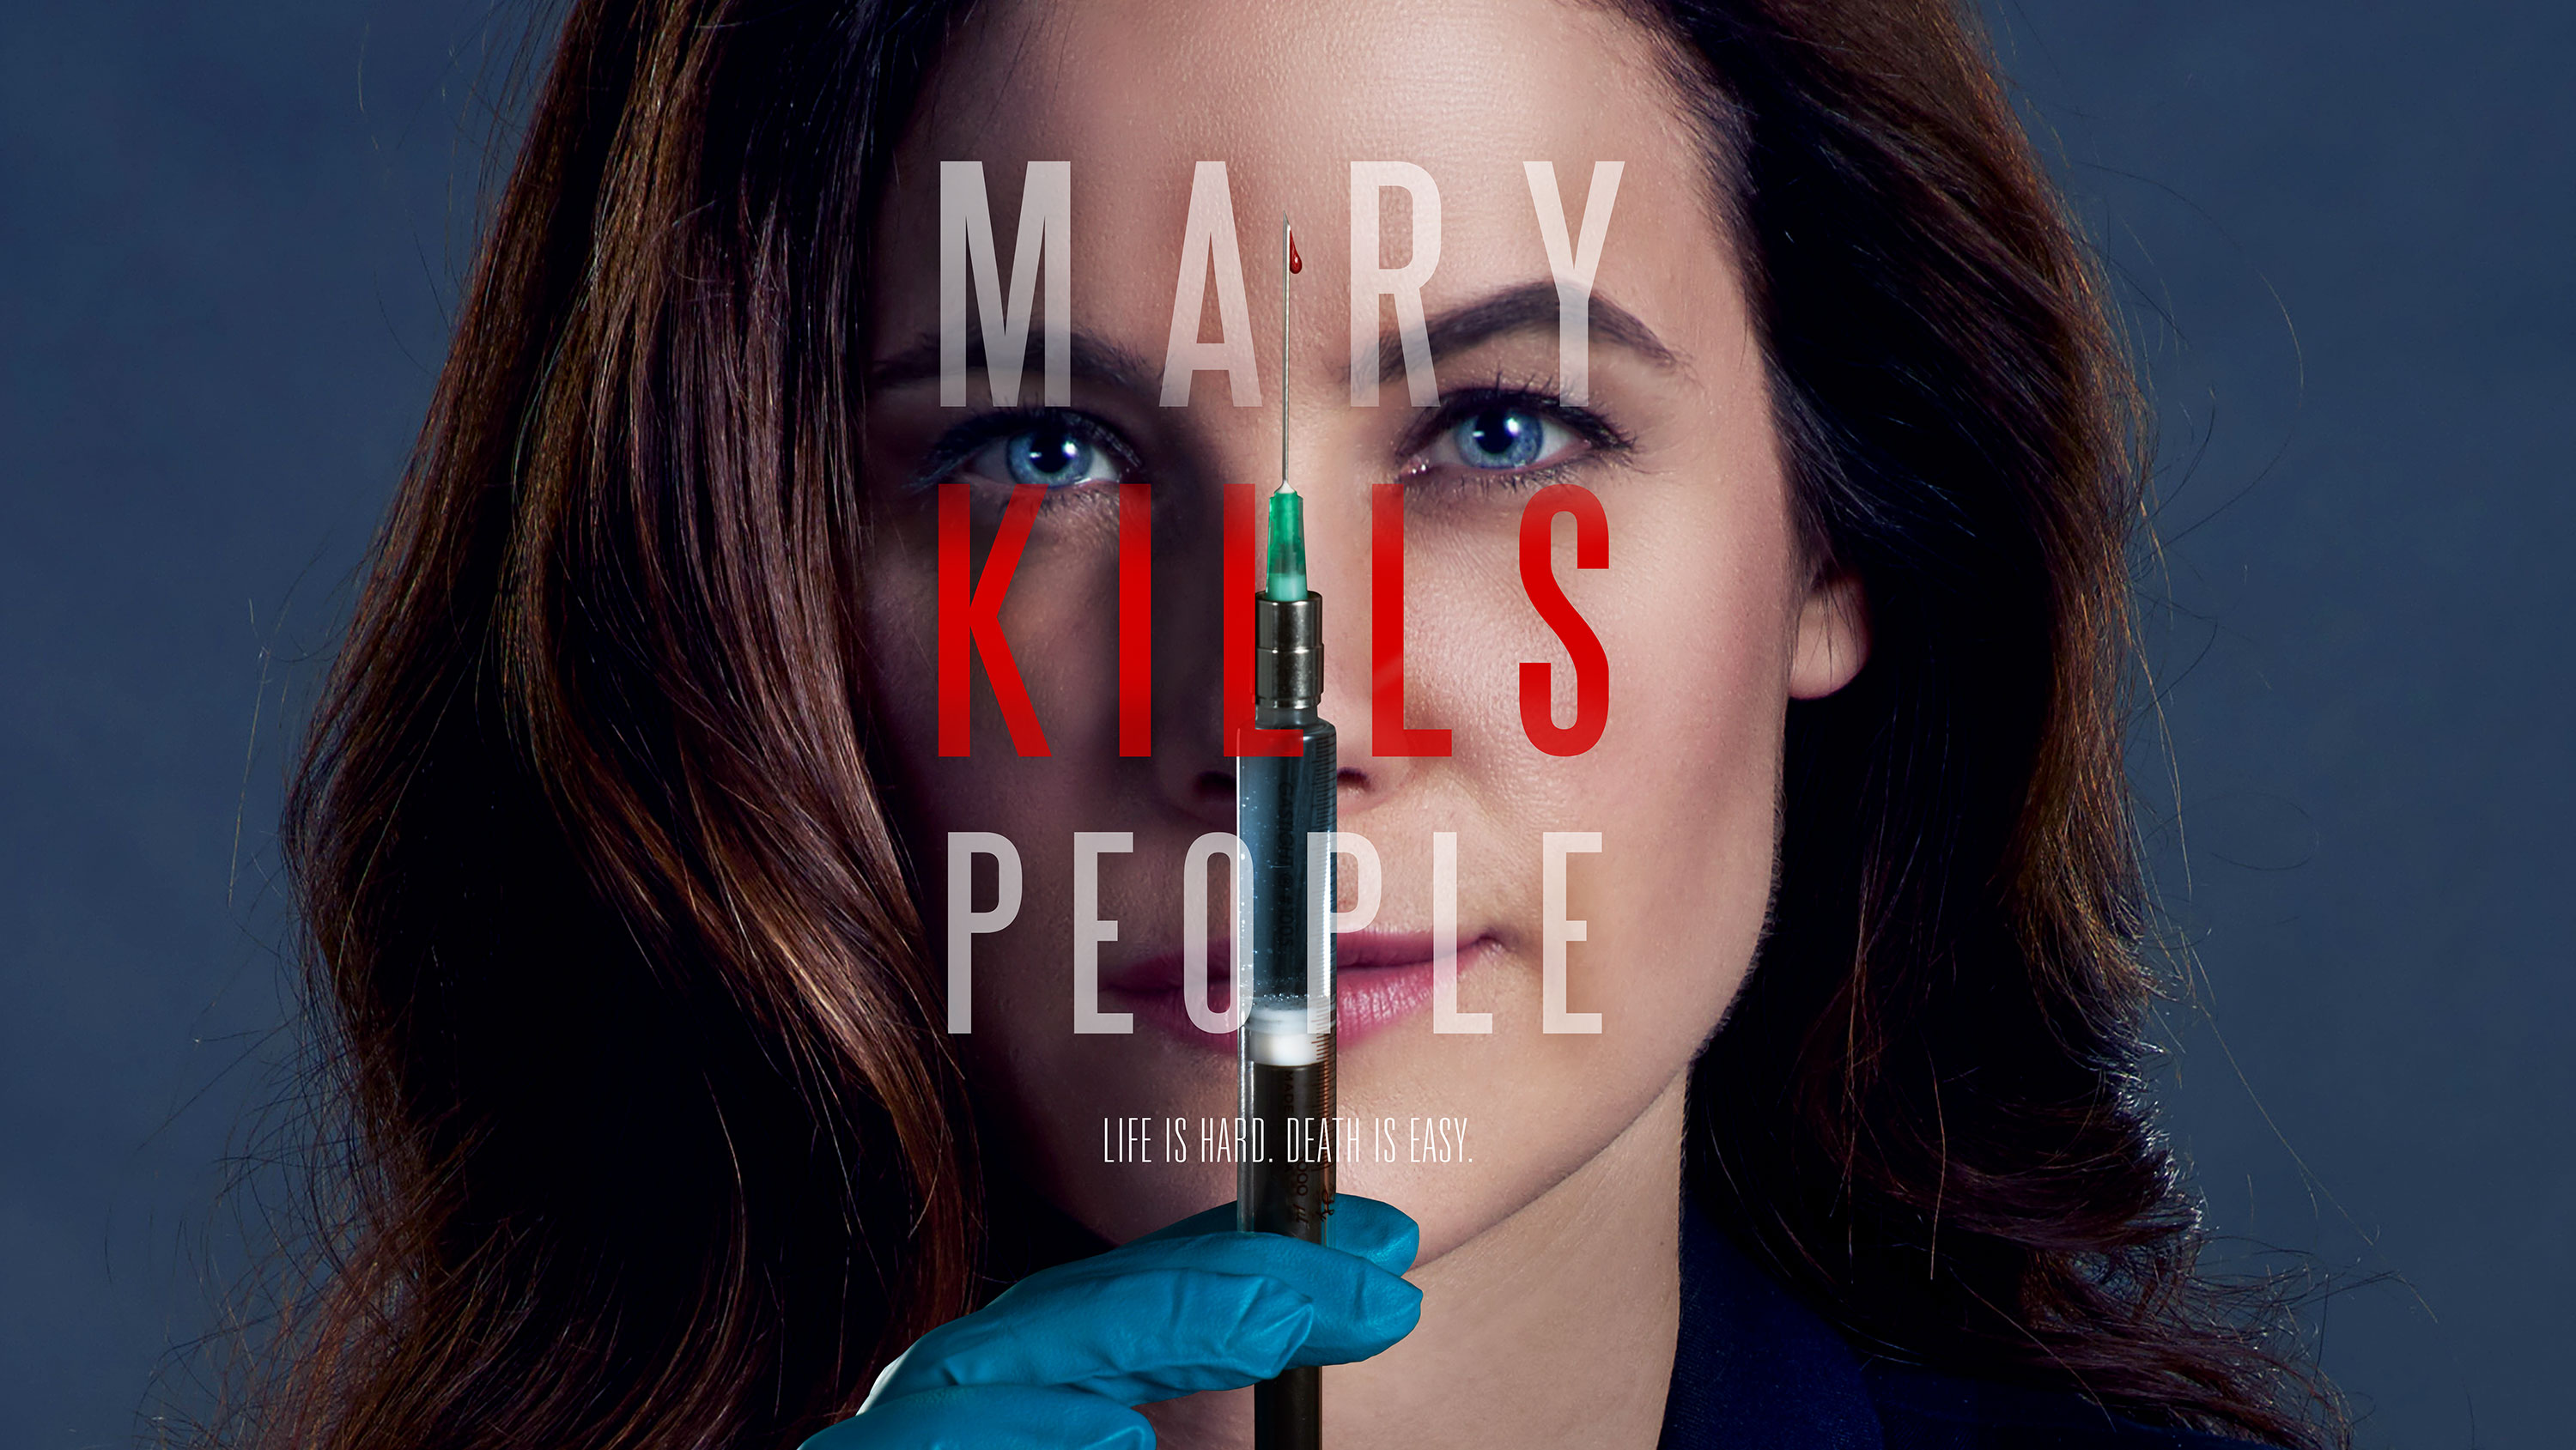 Mary Kills People cmore